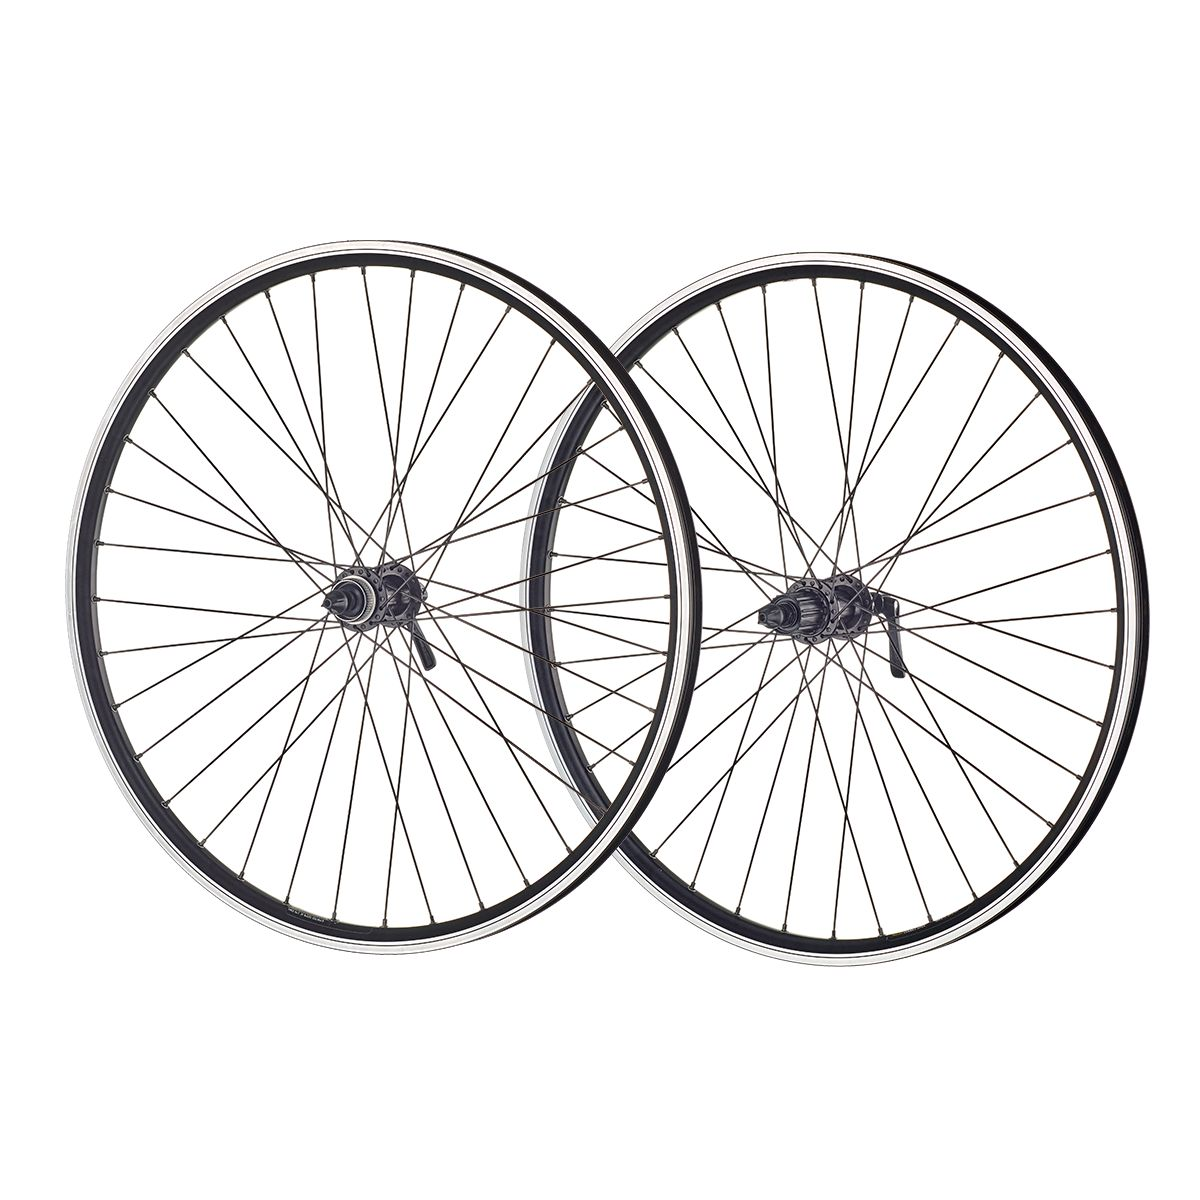 "ROSE MTB wheelset 26"" Xtreme M-ZX 19 / Shimano Deore M6000 Disc 